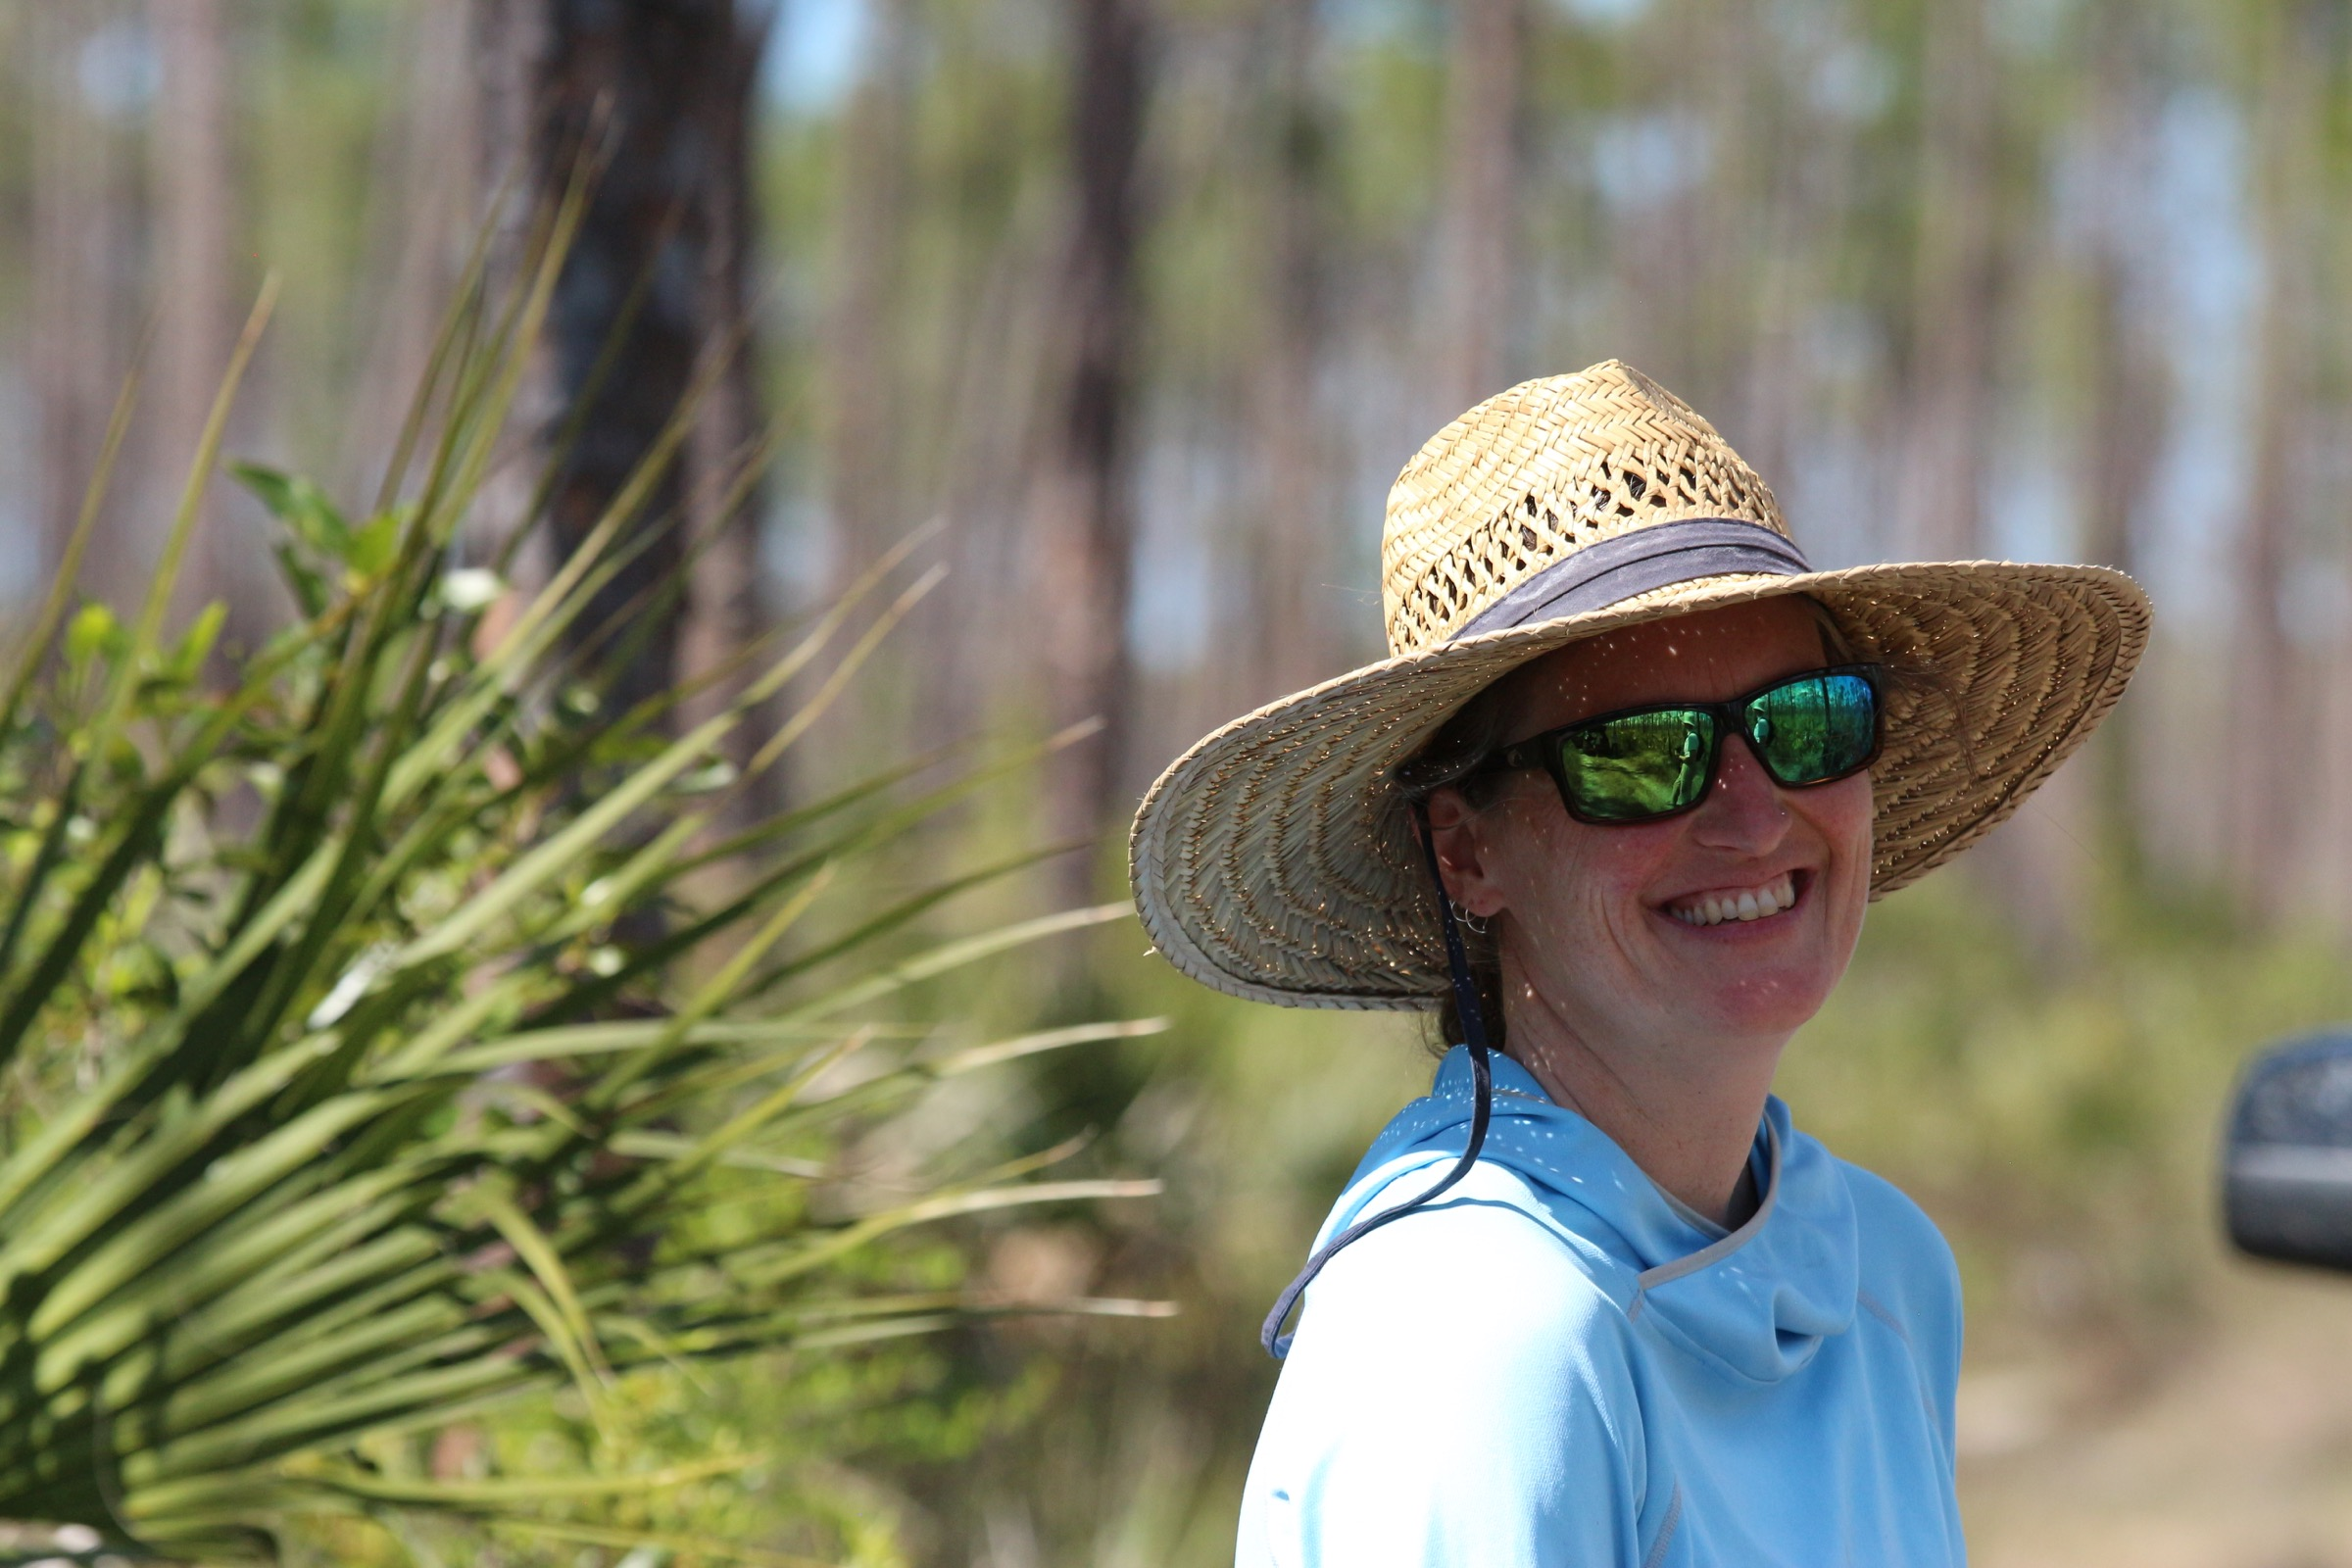 Erica Henry traded in her skis to study Florida's rare butterflies, including the Bartram's scrub hairstreak that lives here in the Everglades National Park. Photograph by Hannah Hoag